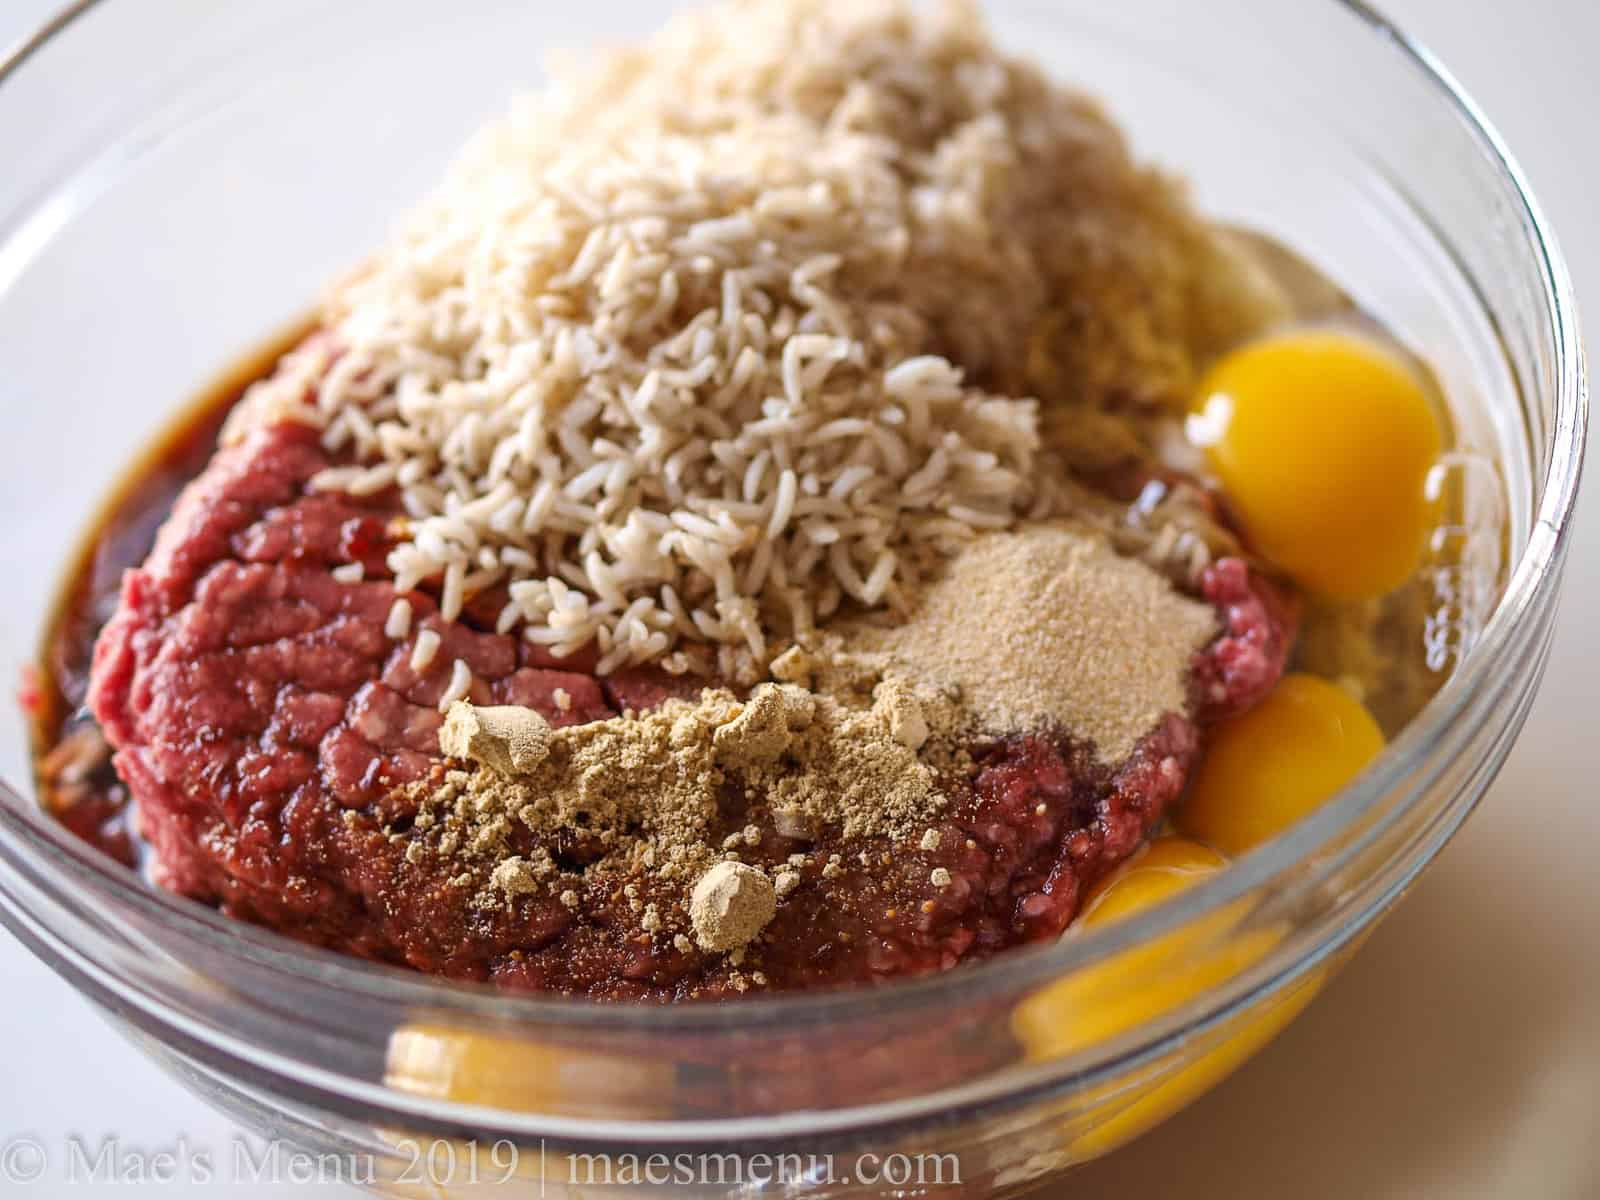 All the raw ingredients for a teriyaki meatloaf in a large glass mixing bowl